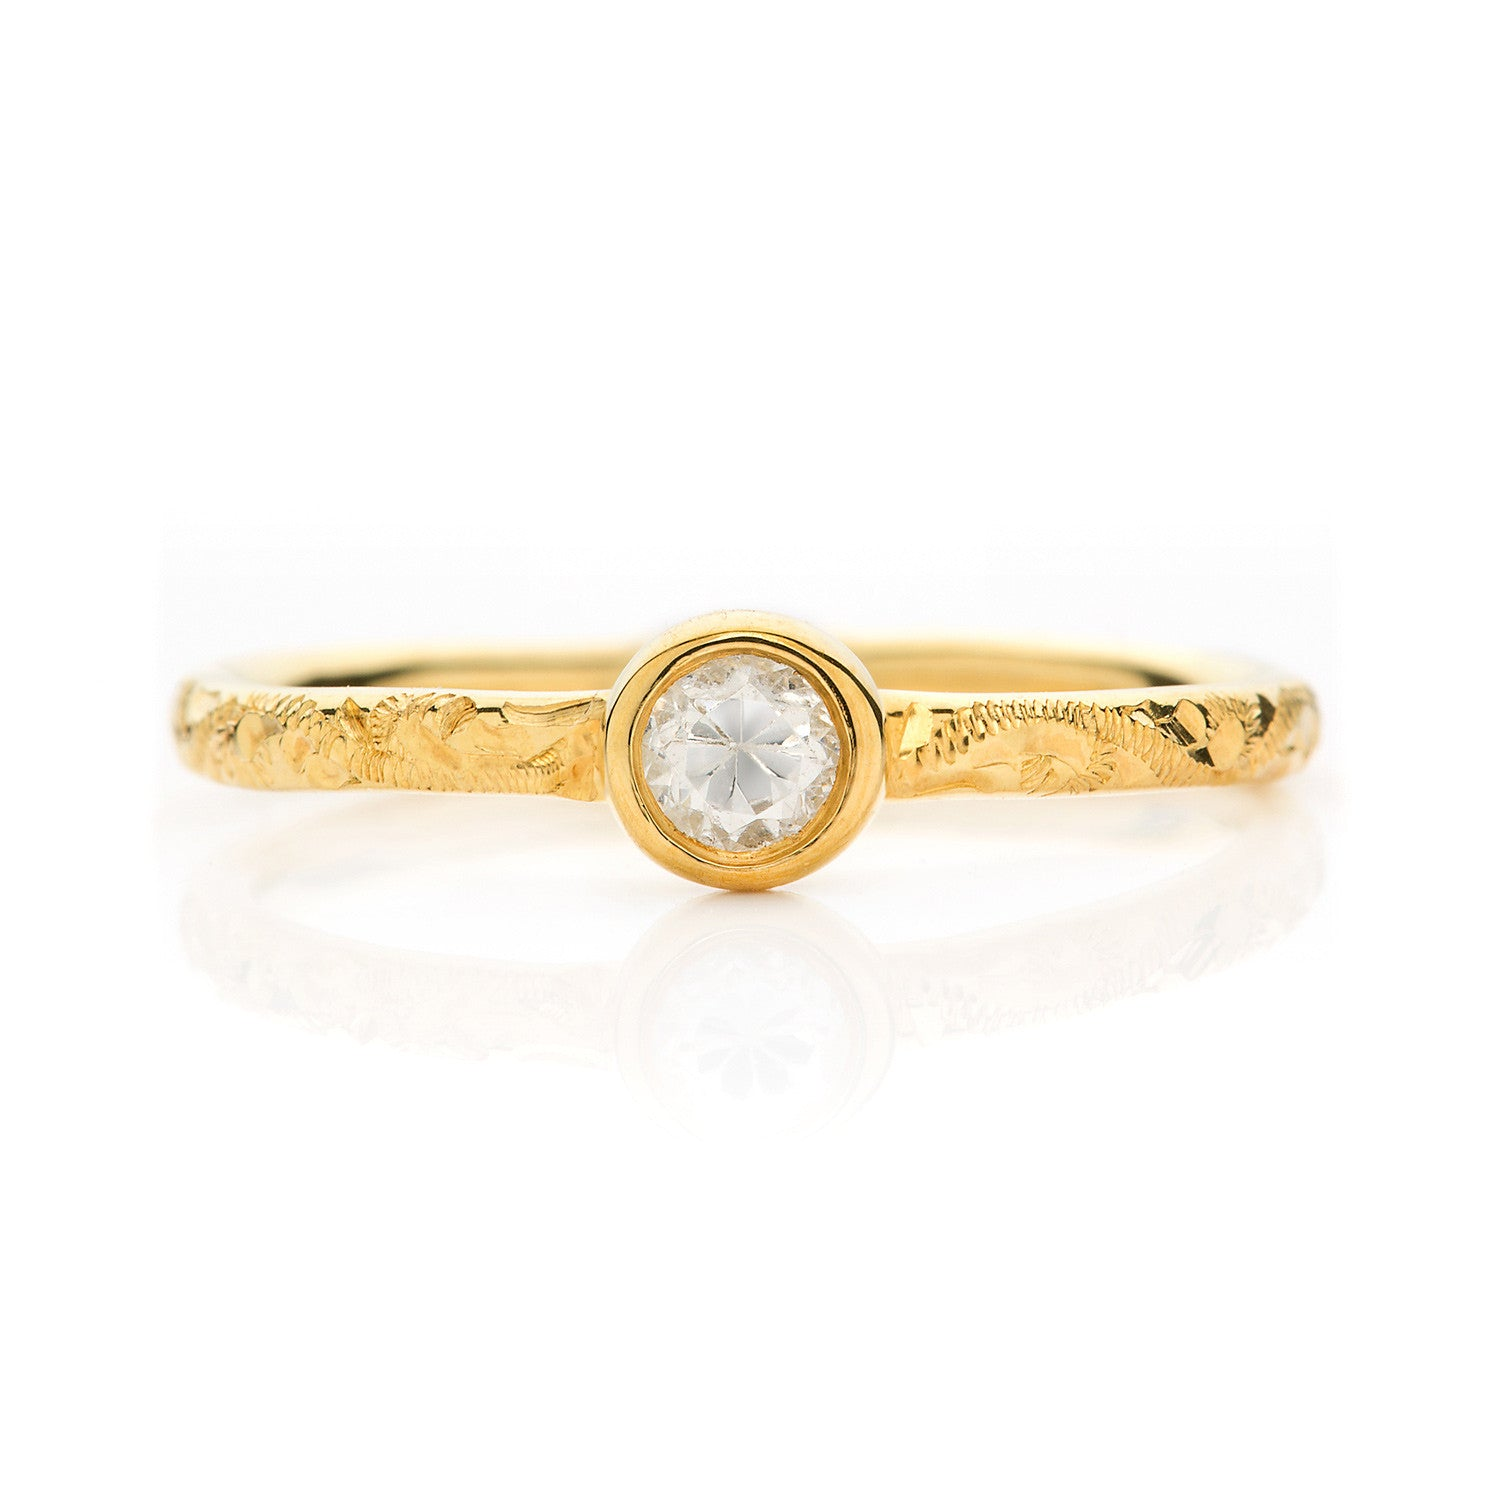 Hera Ethical Diamond Engagement Ring, Gold